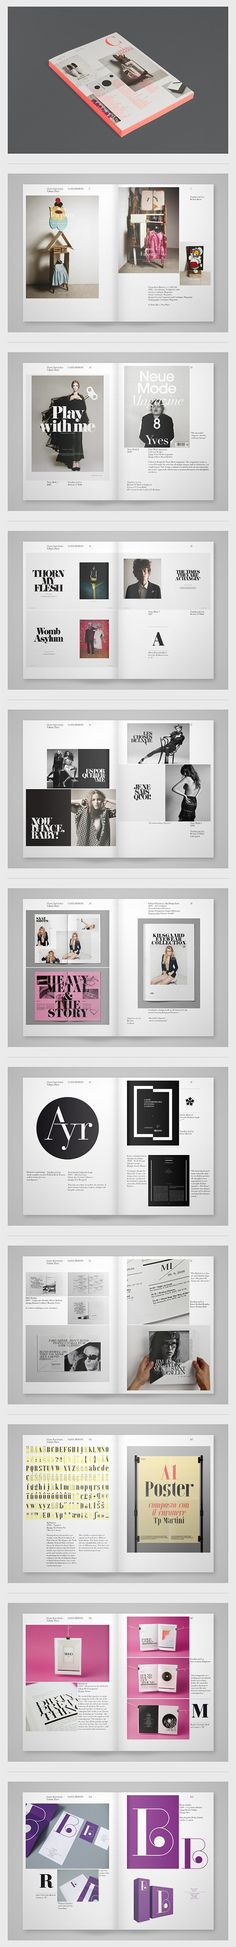 I Love Bondoni on Behance